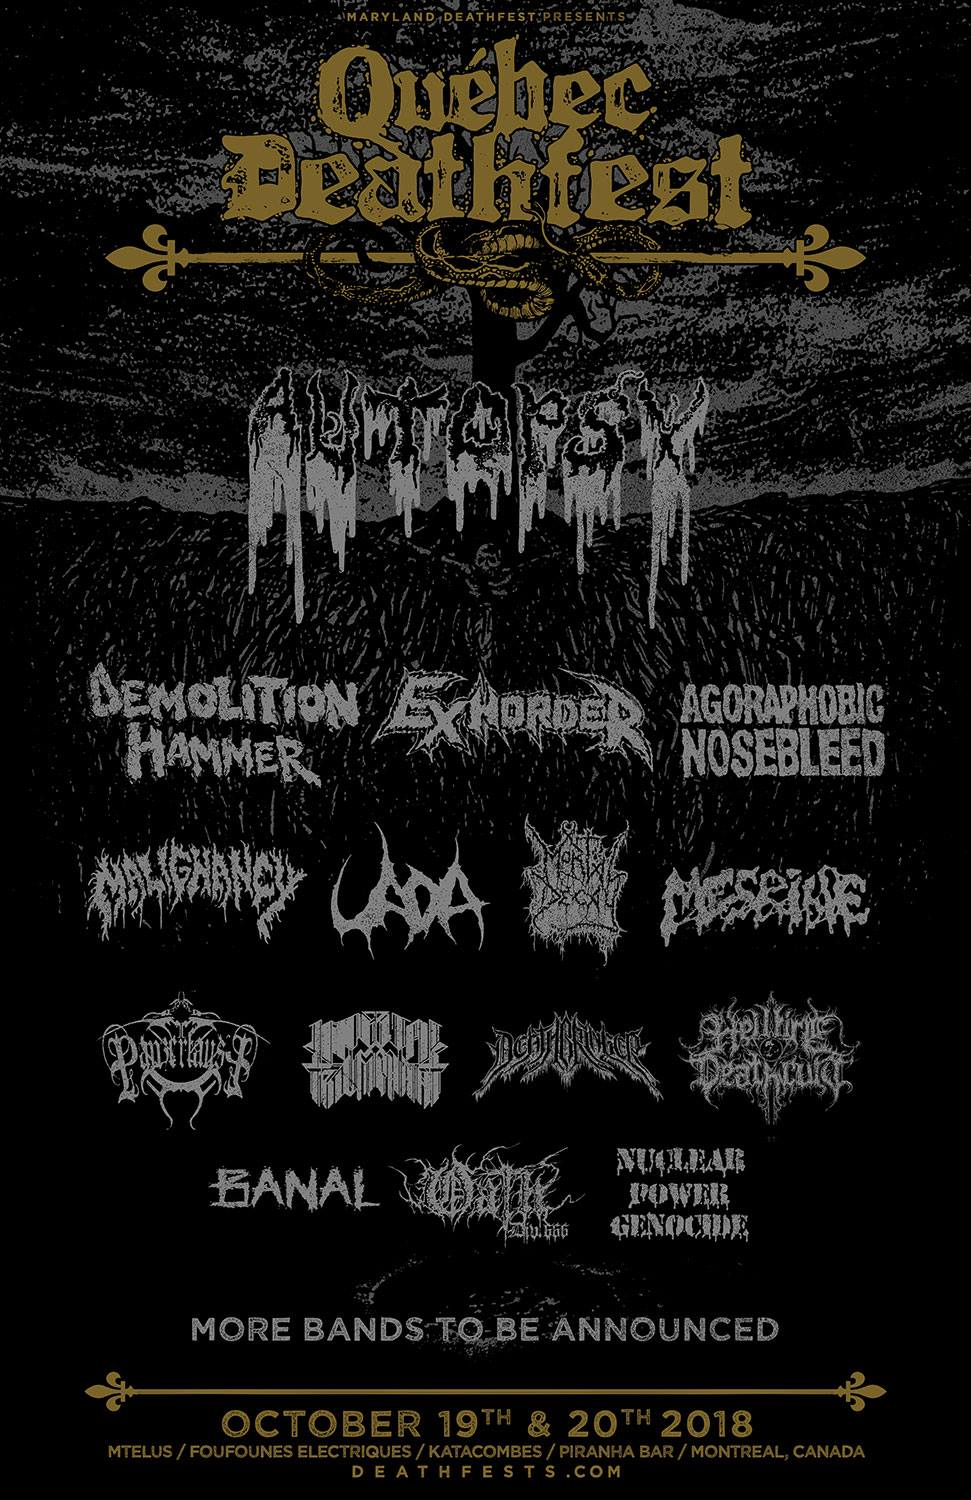 Quebec Deathfest announces initial lineup (Autopsy, Demolition Hammer, Exhorder, and more)